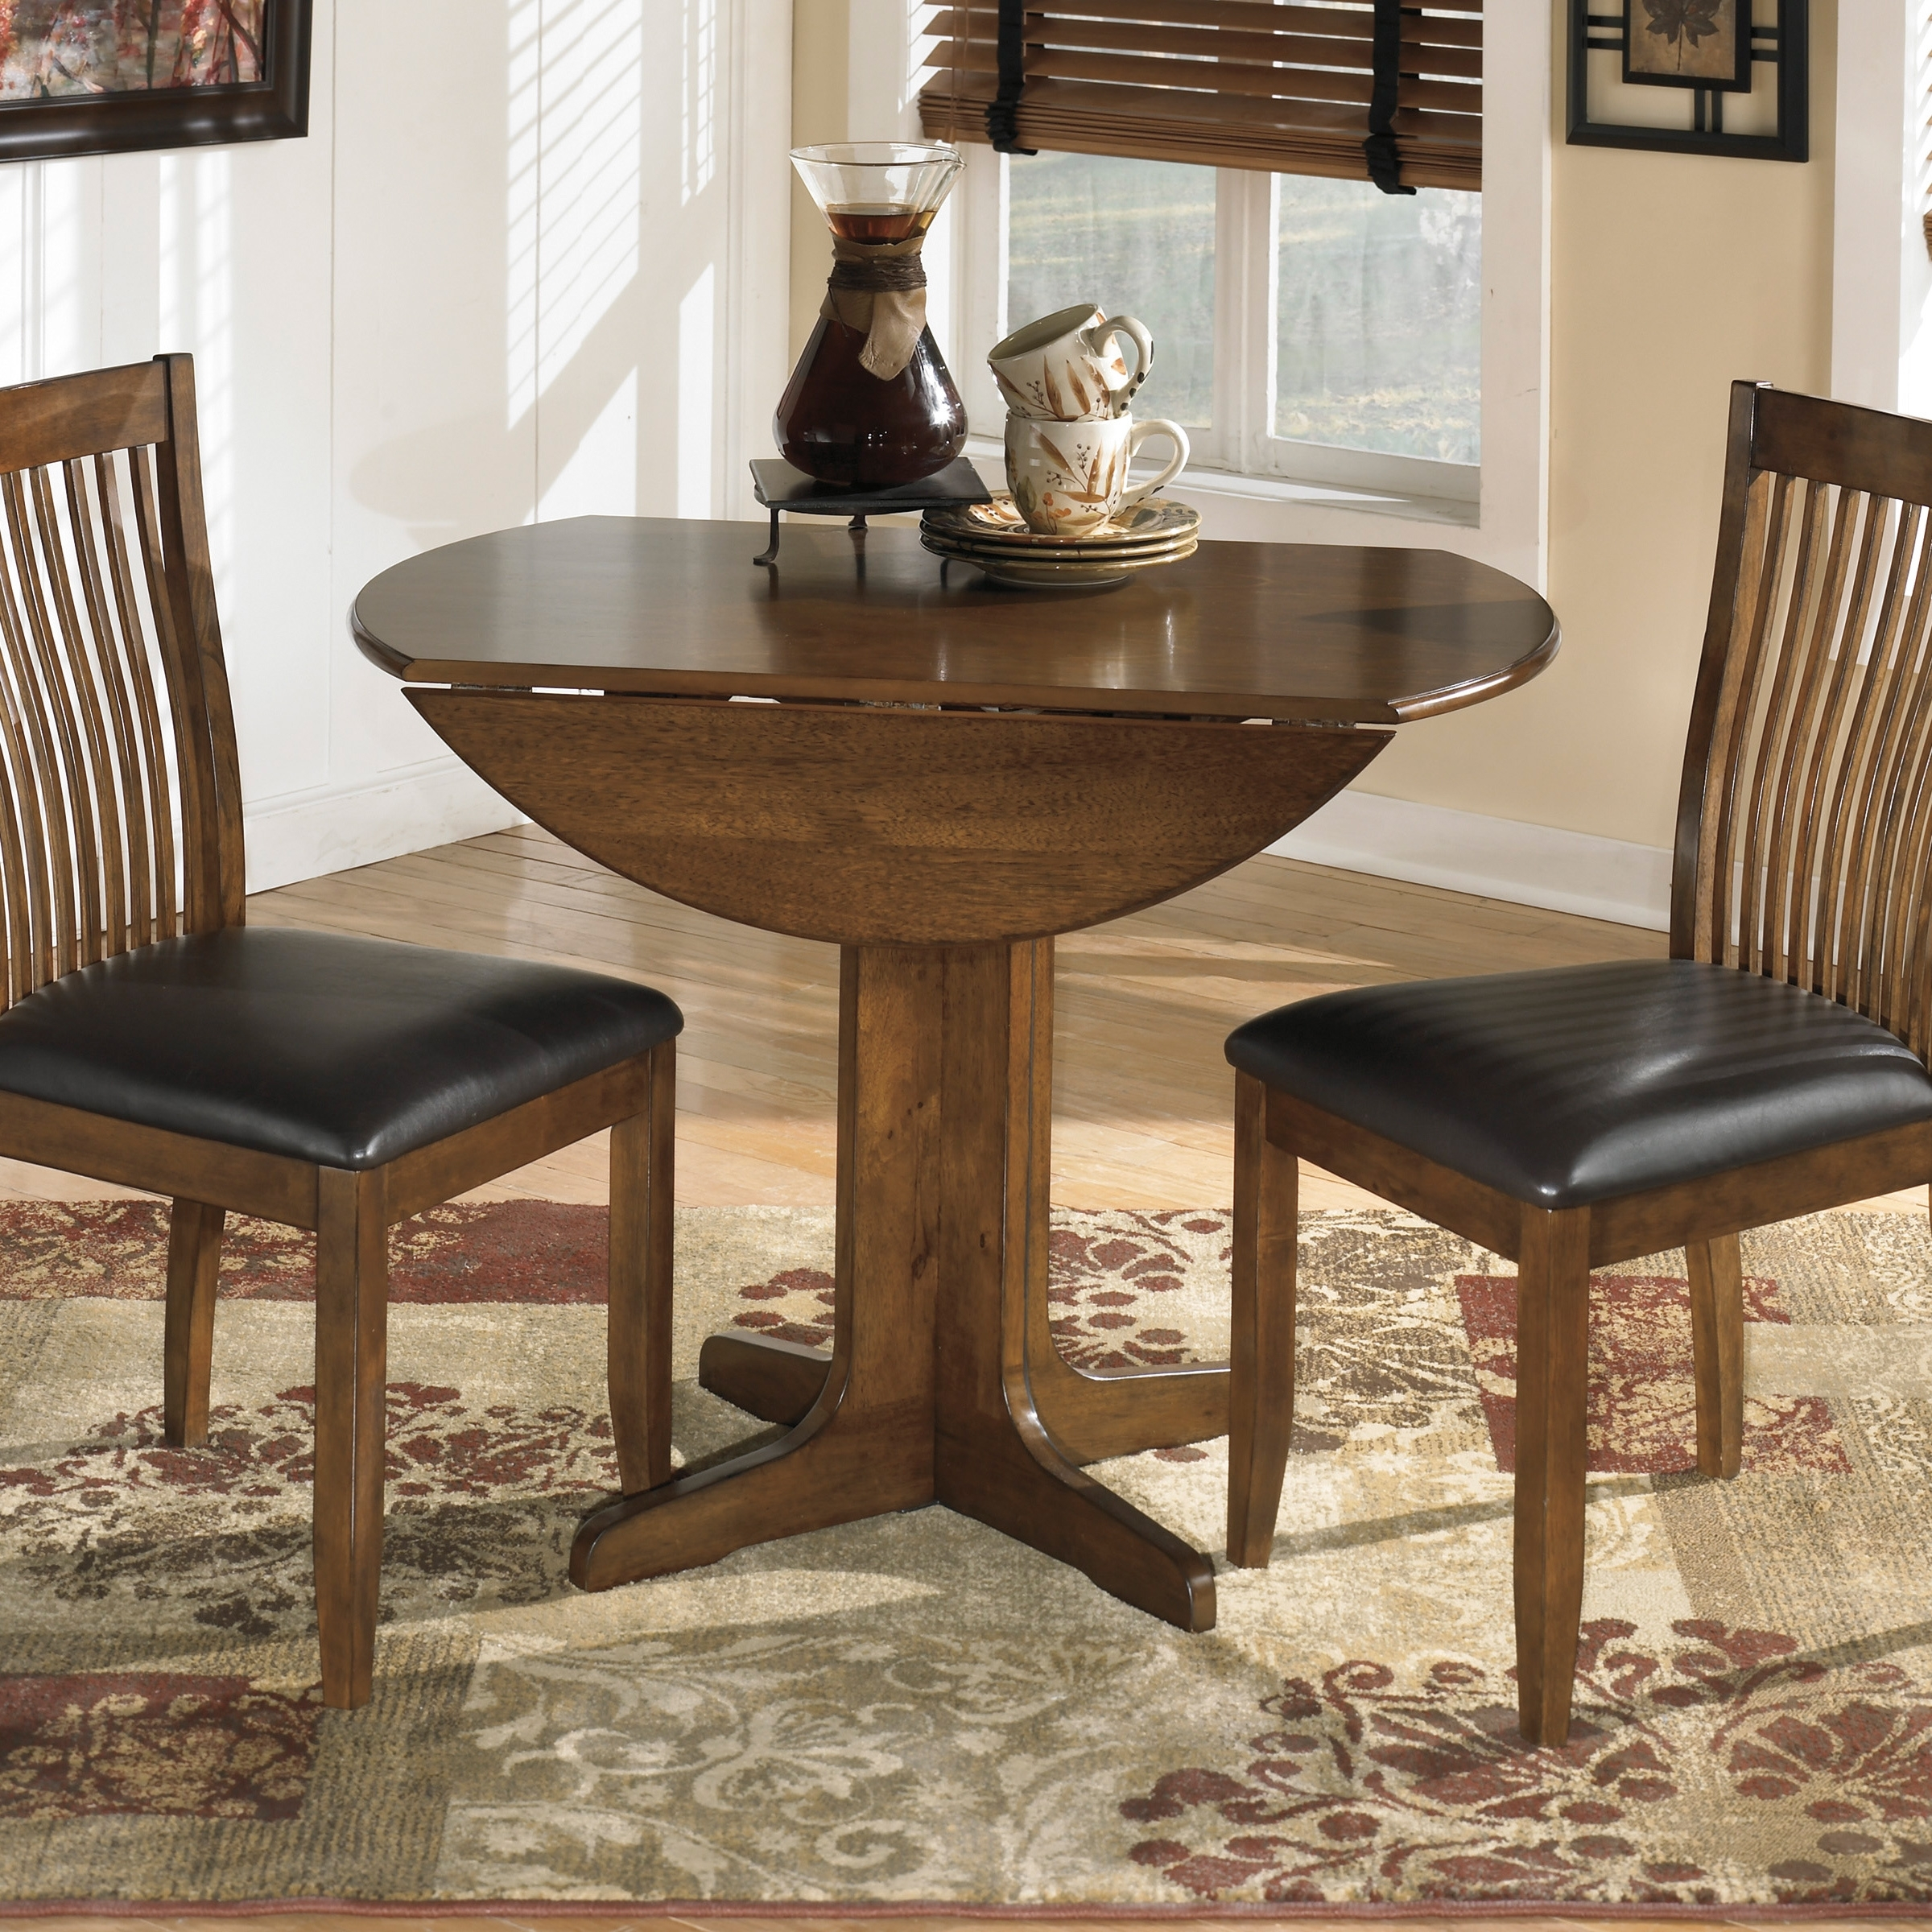 Fashionable Cool Small Round Dining Table Throughout Small Dark Wood Dining Tables (View 20 of 25)